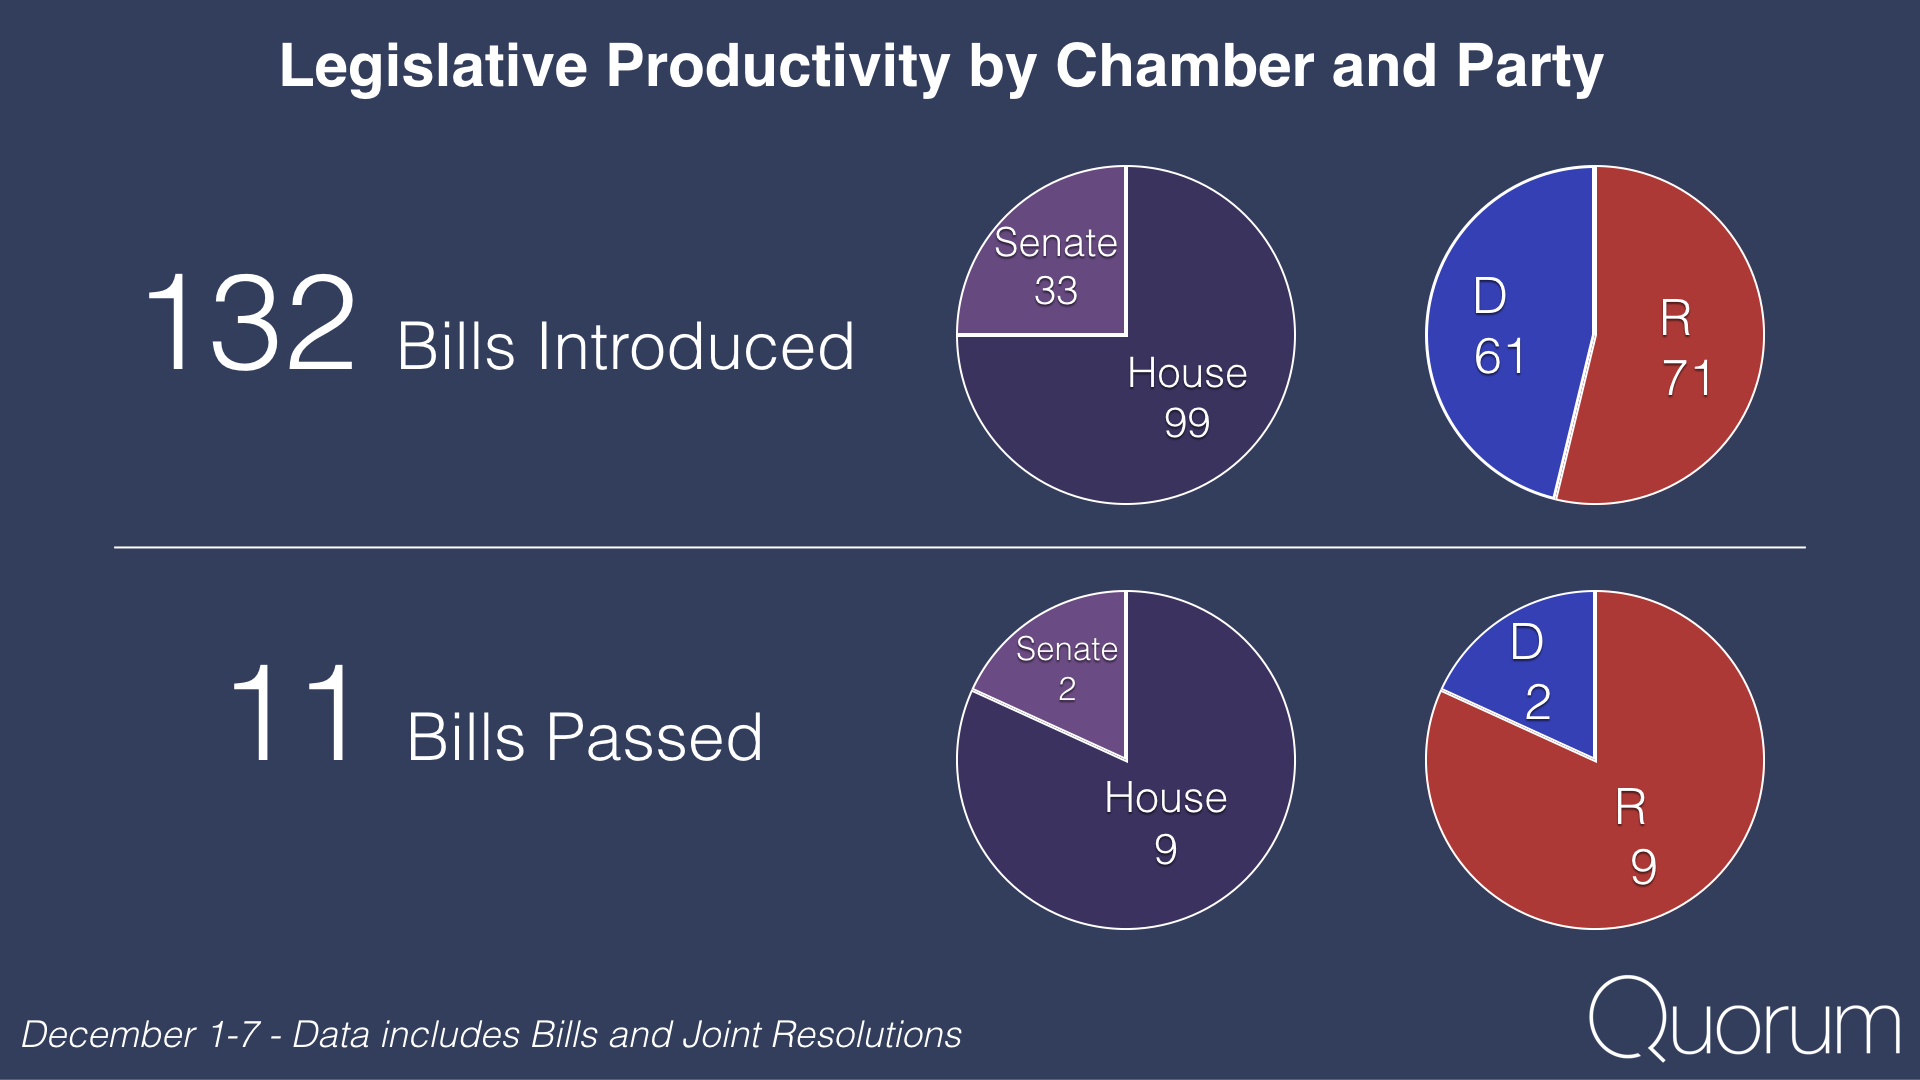 Legislative productivity by chamber and party